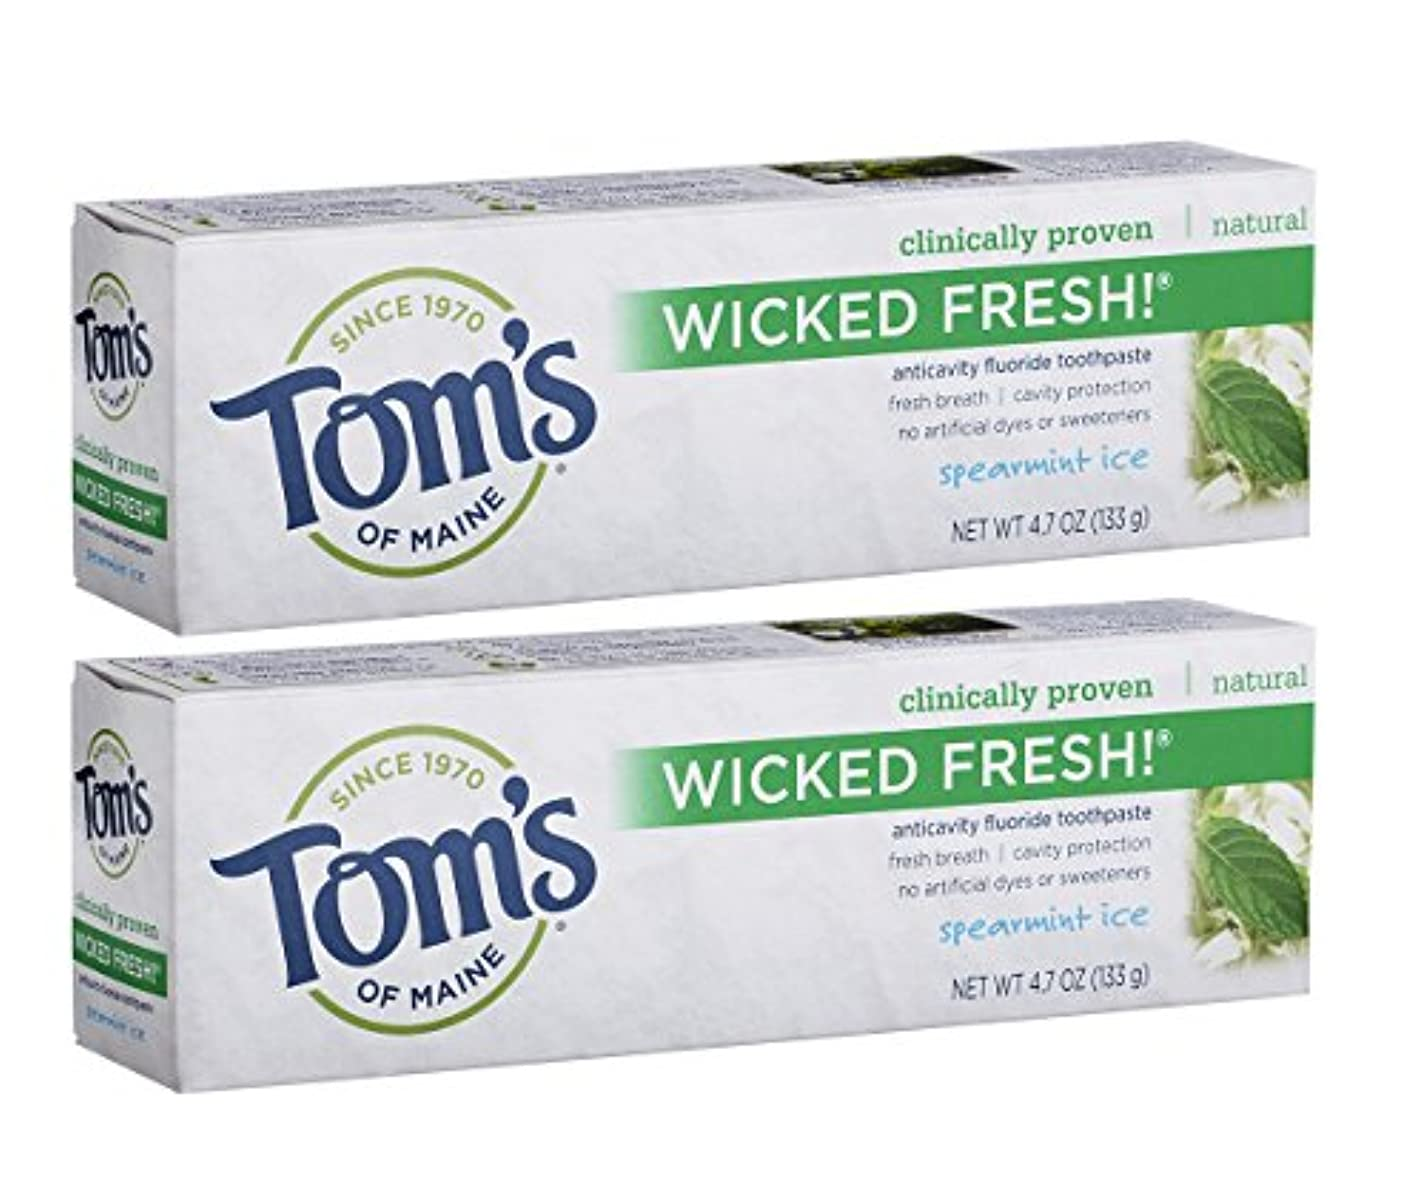 Tom's of Maine Wicked Fresh Long Lasting Fresh Breath Fluoride Toothpaste, Spearmint Ice, 4.7-Ounce by Tom's of...